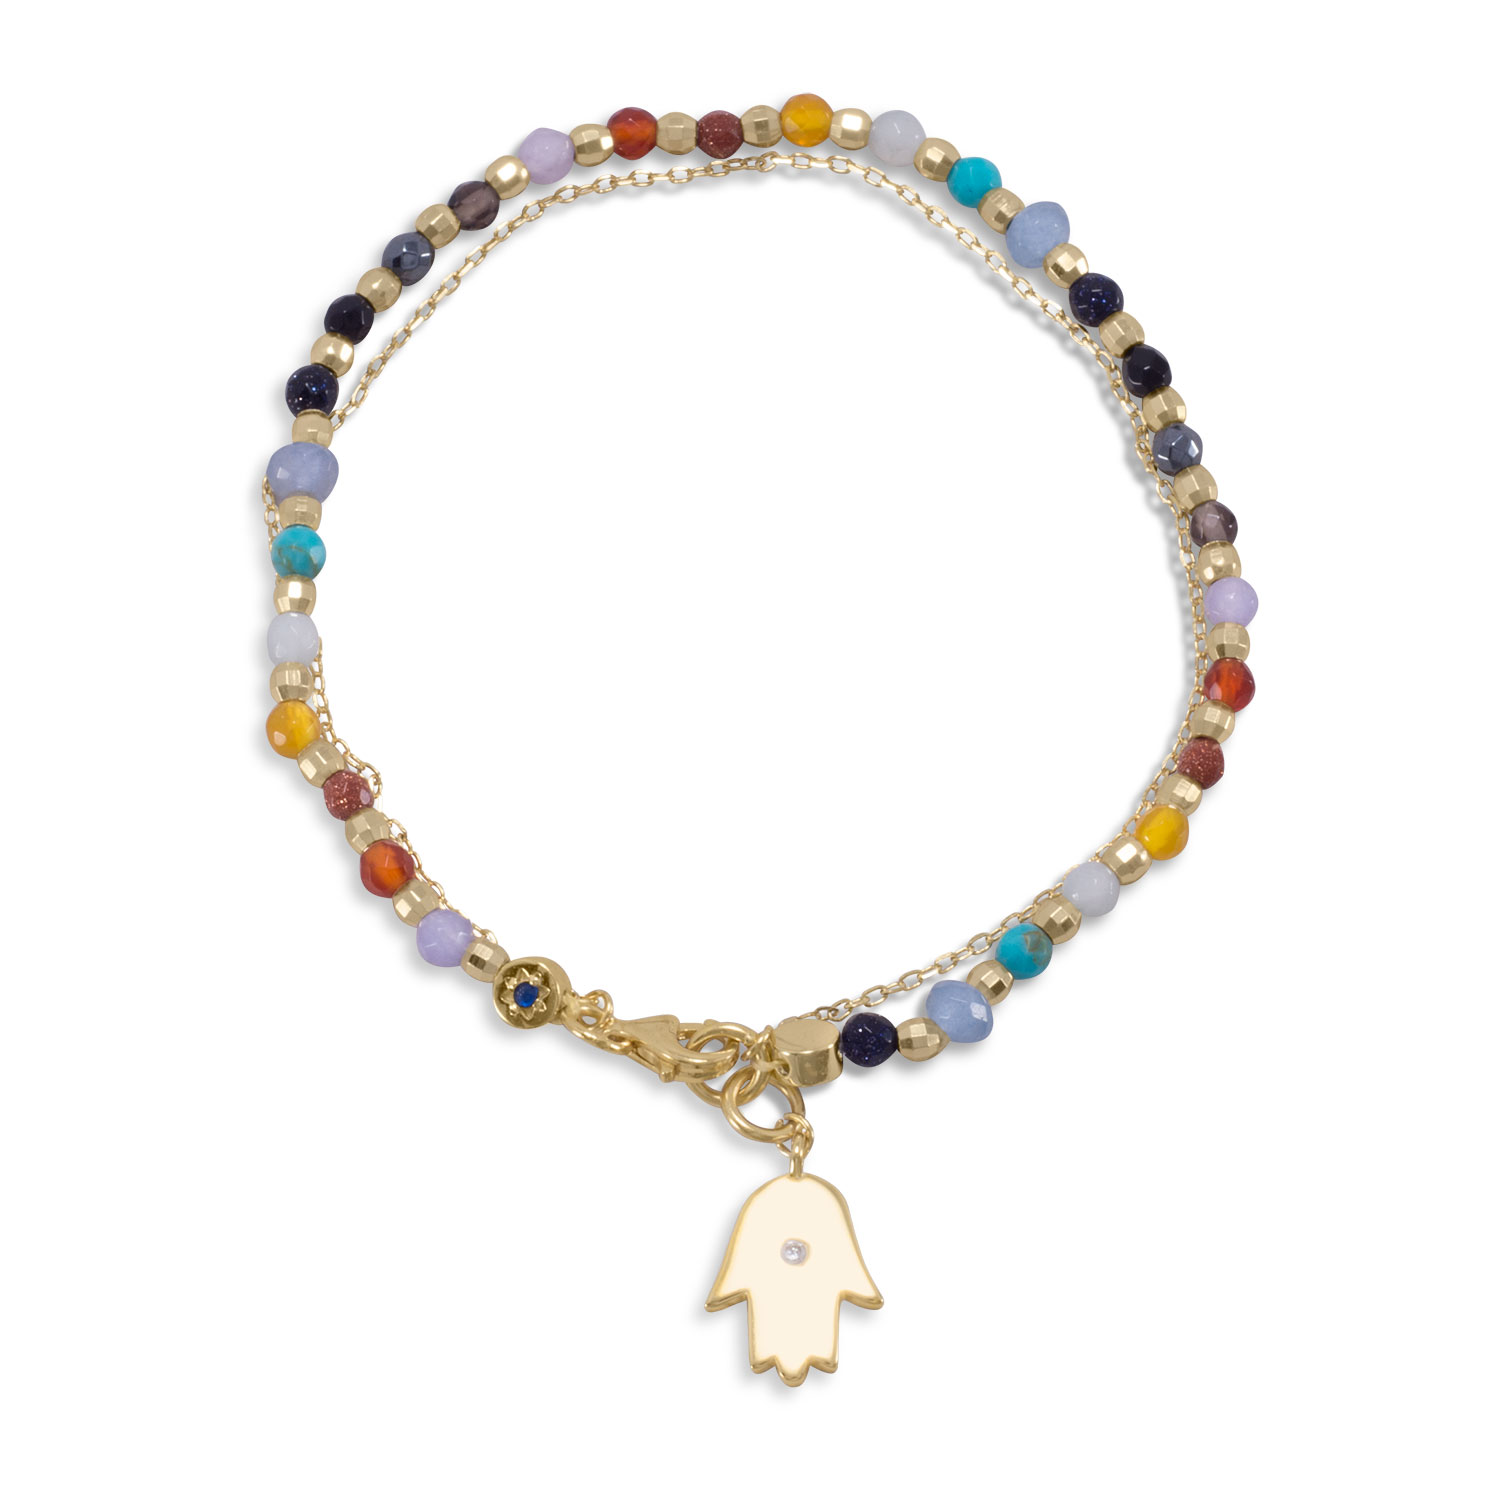 Layered Bracelet Hamsa Charm and Genuine Stone Beads Gold-plated by unknown